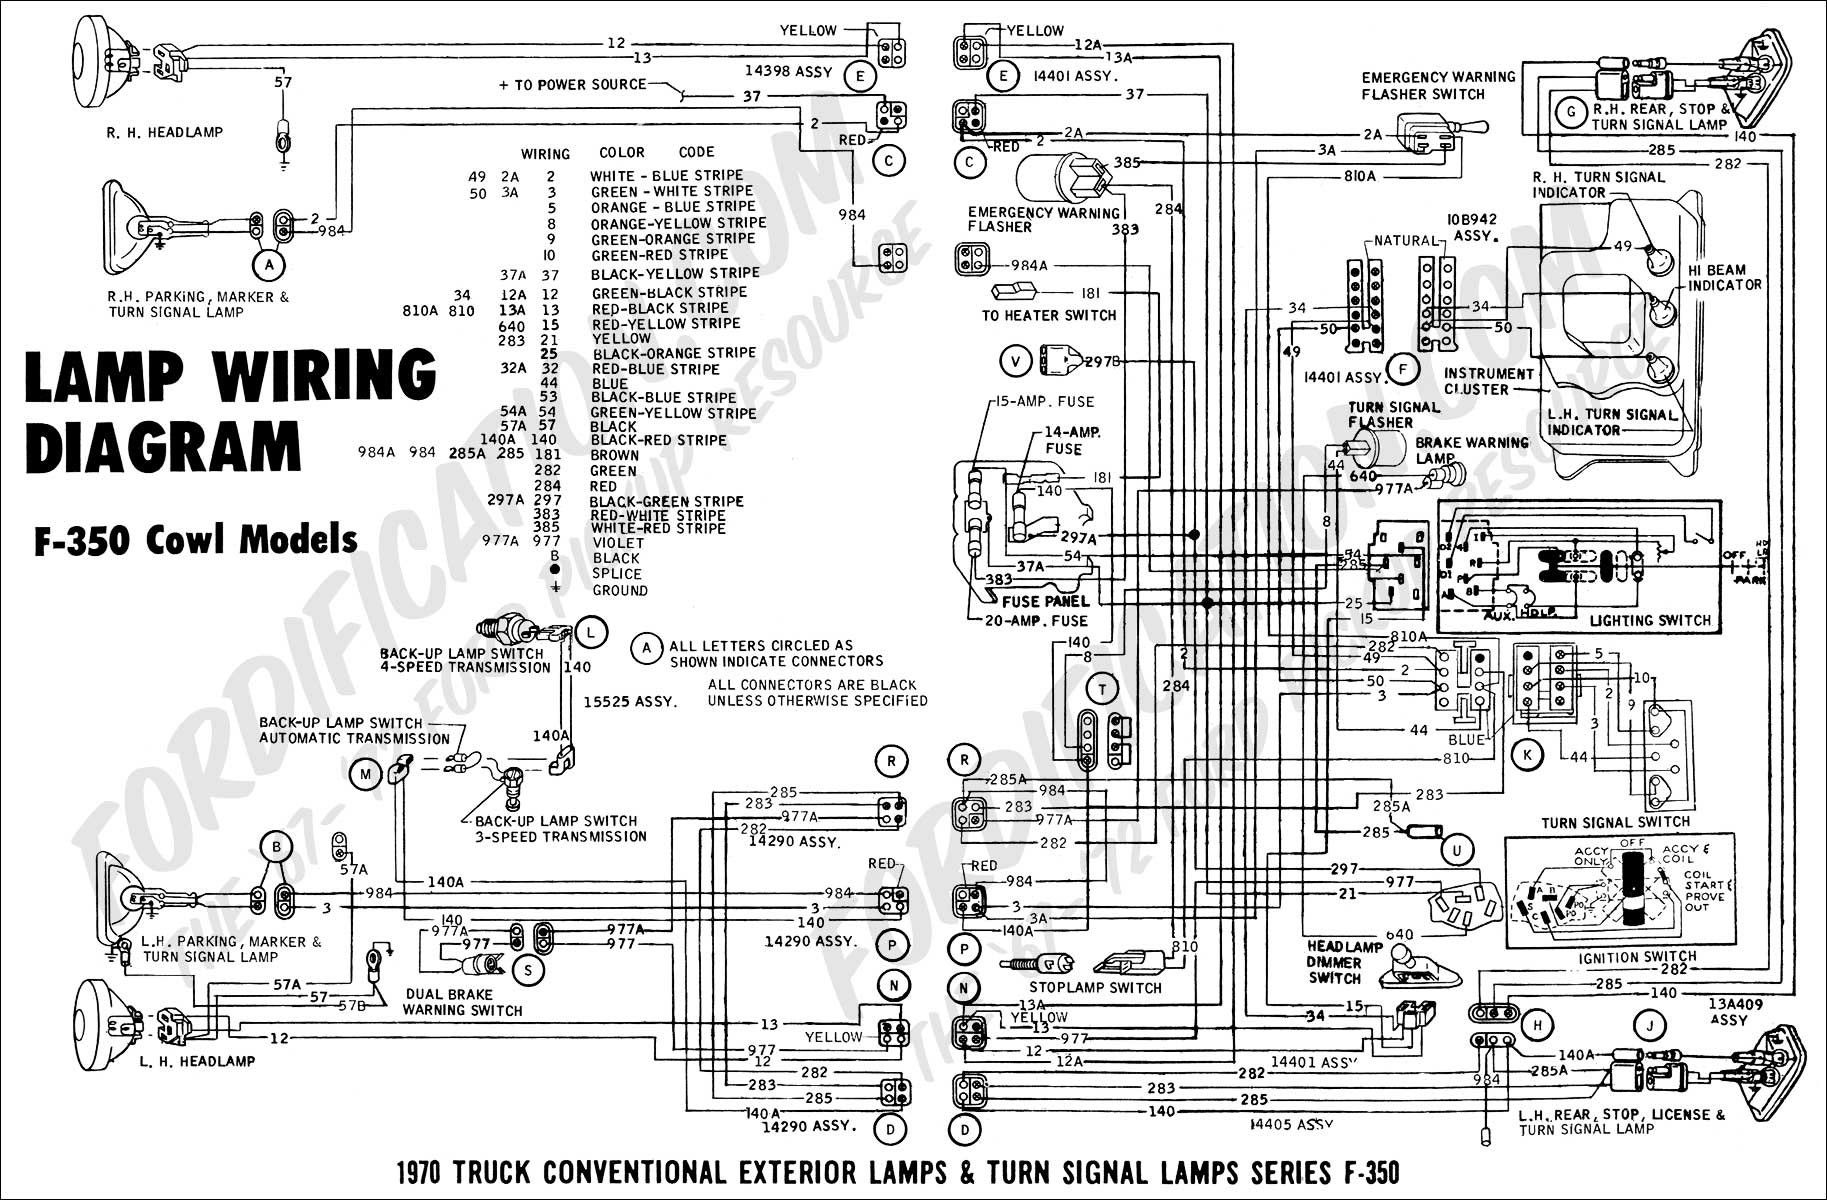 1997 ford f150 xlt radio wiring diagram 2010 ranger 2014 autos post